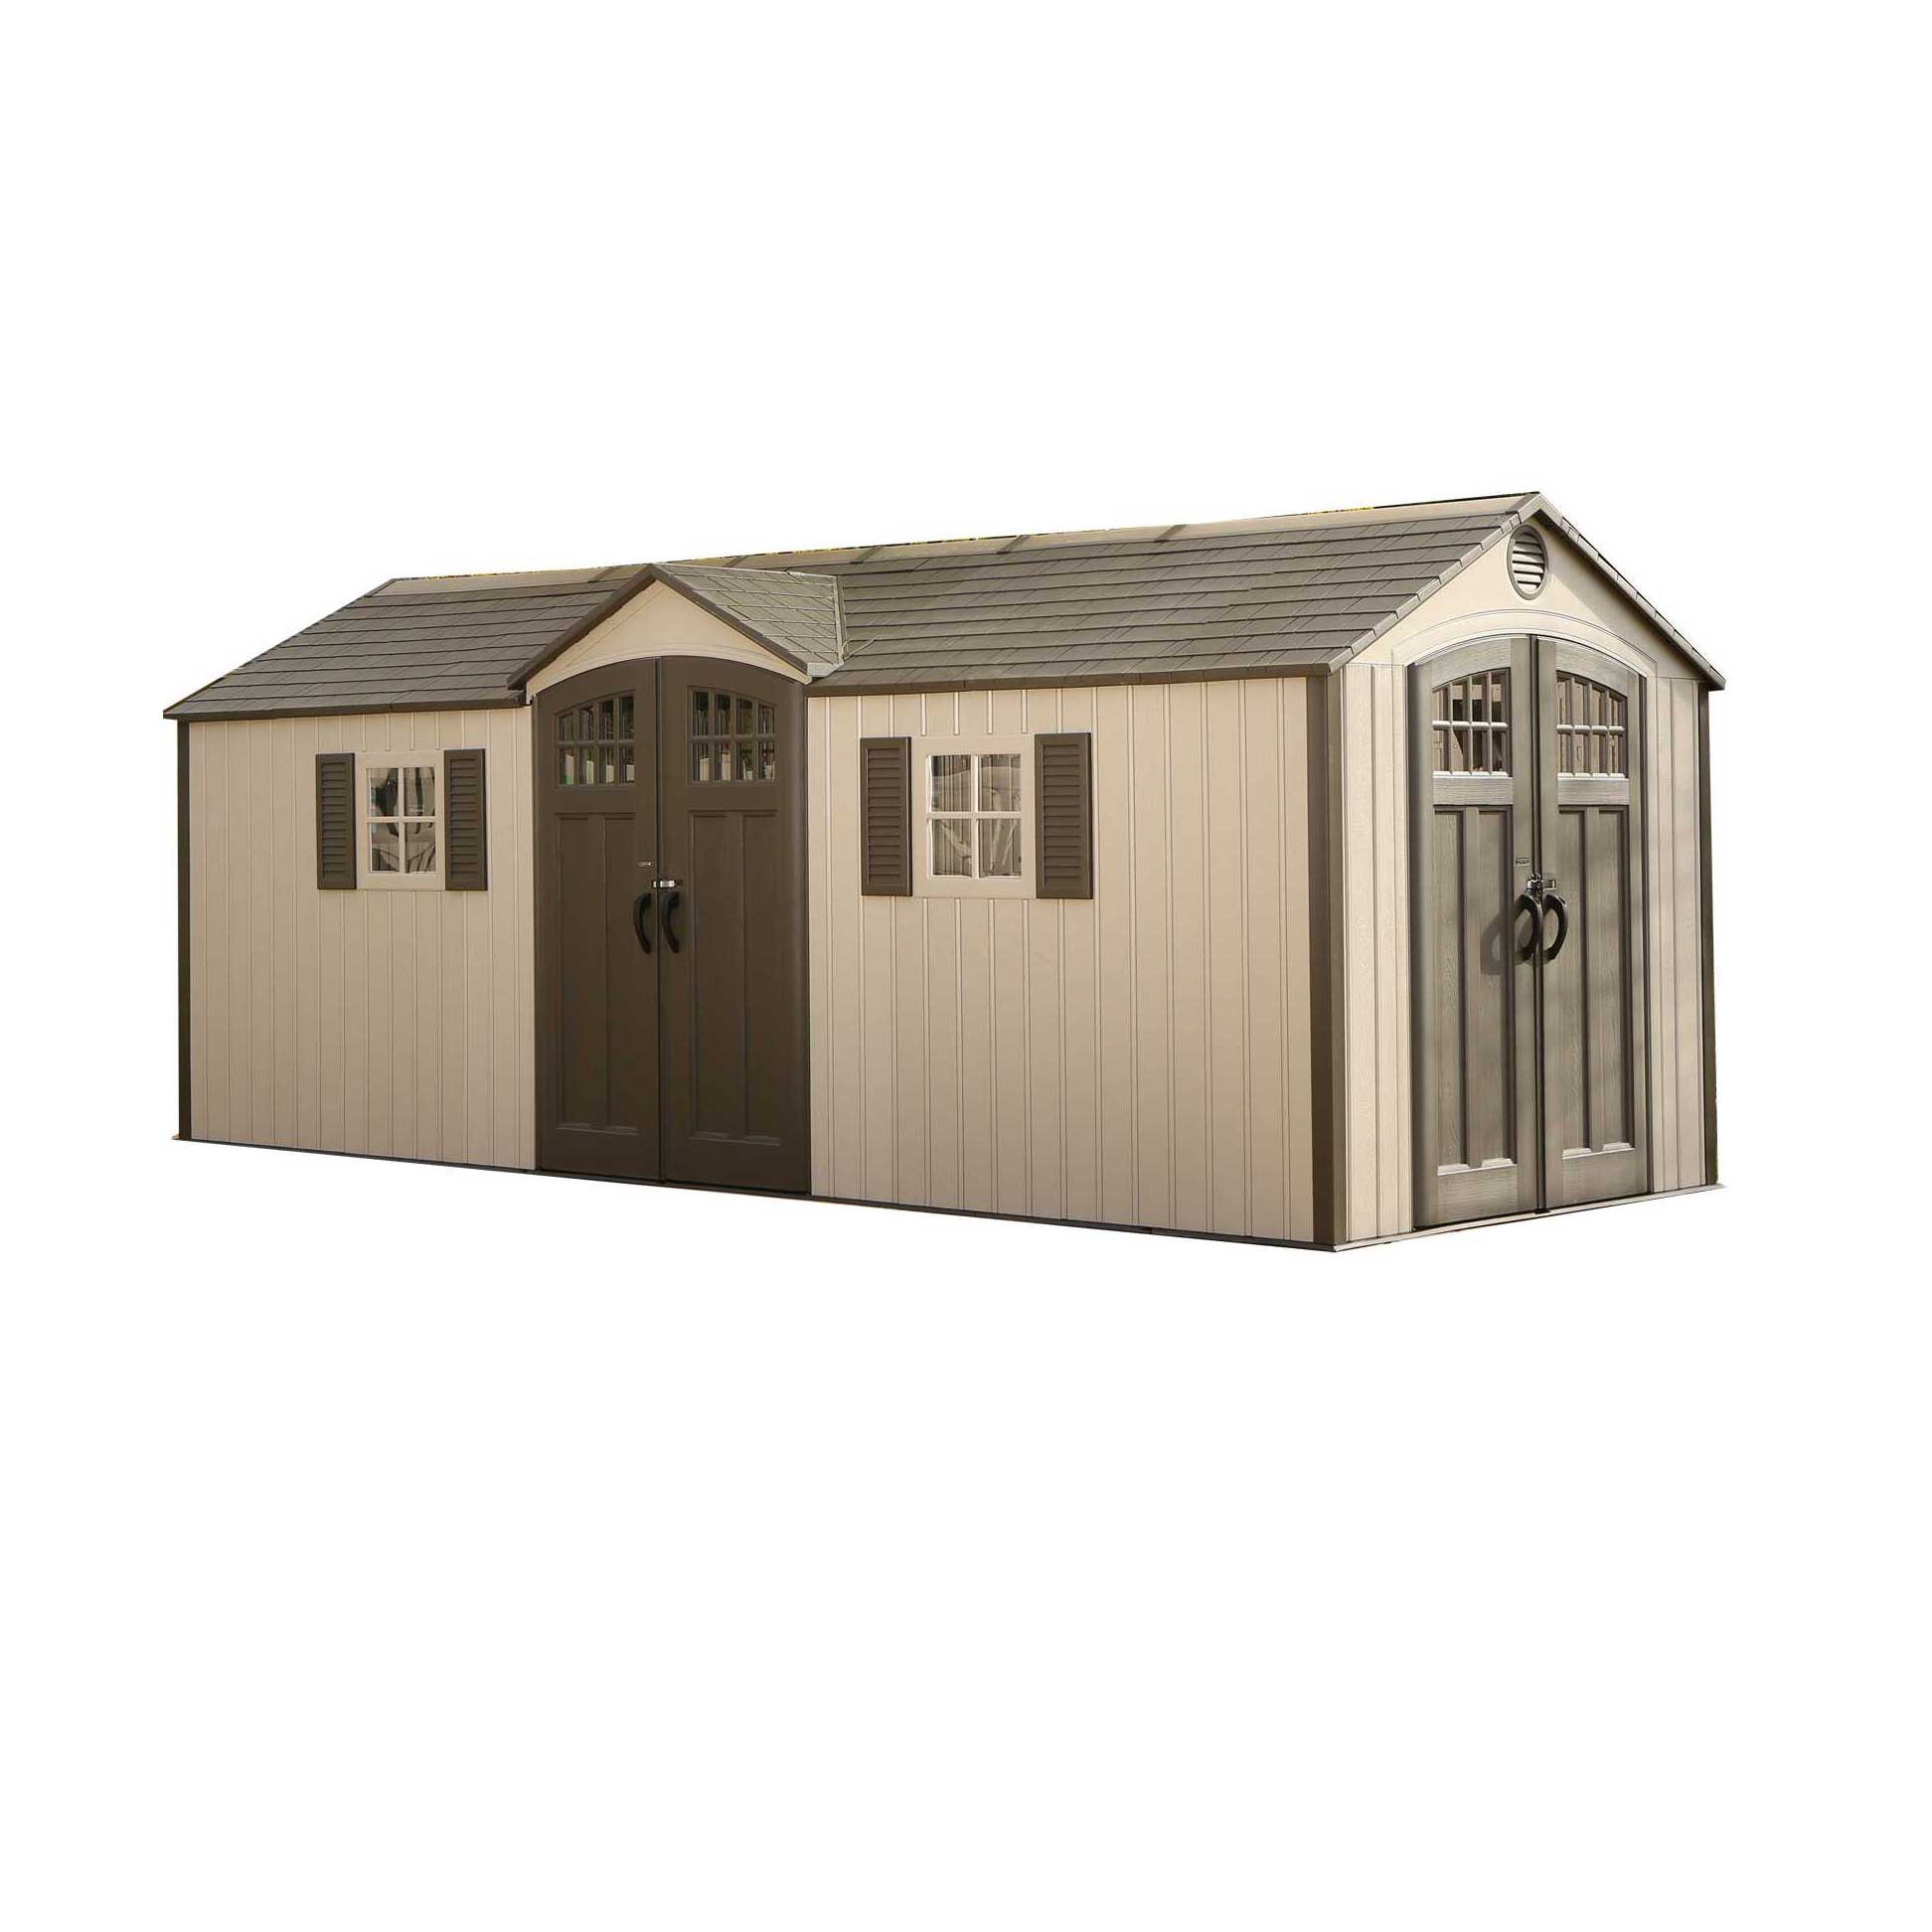 Lifetime x8 Lifetime Shed on Sale with Fast Free